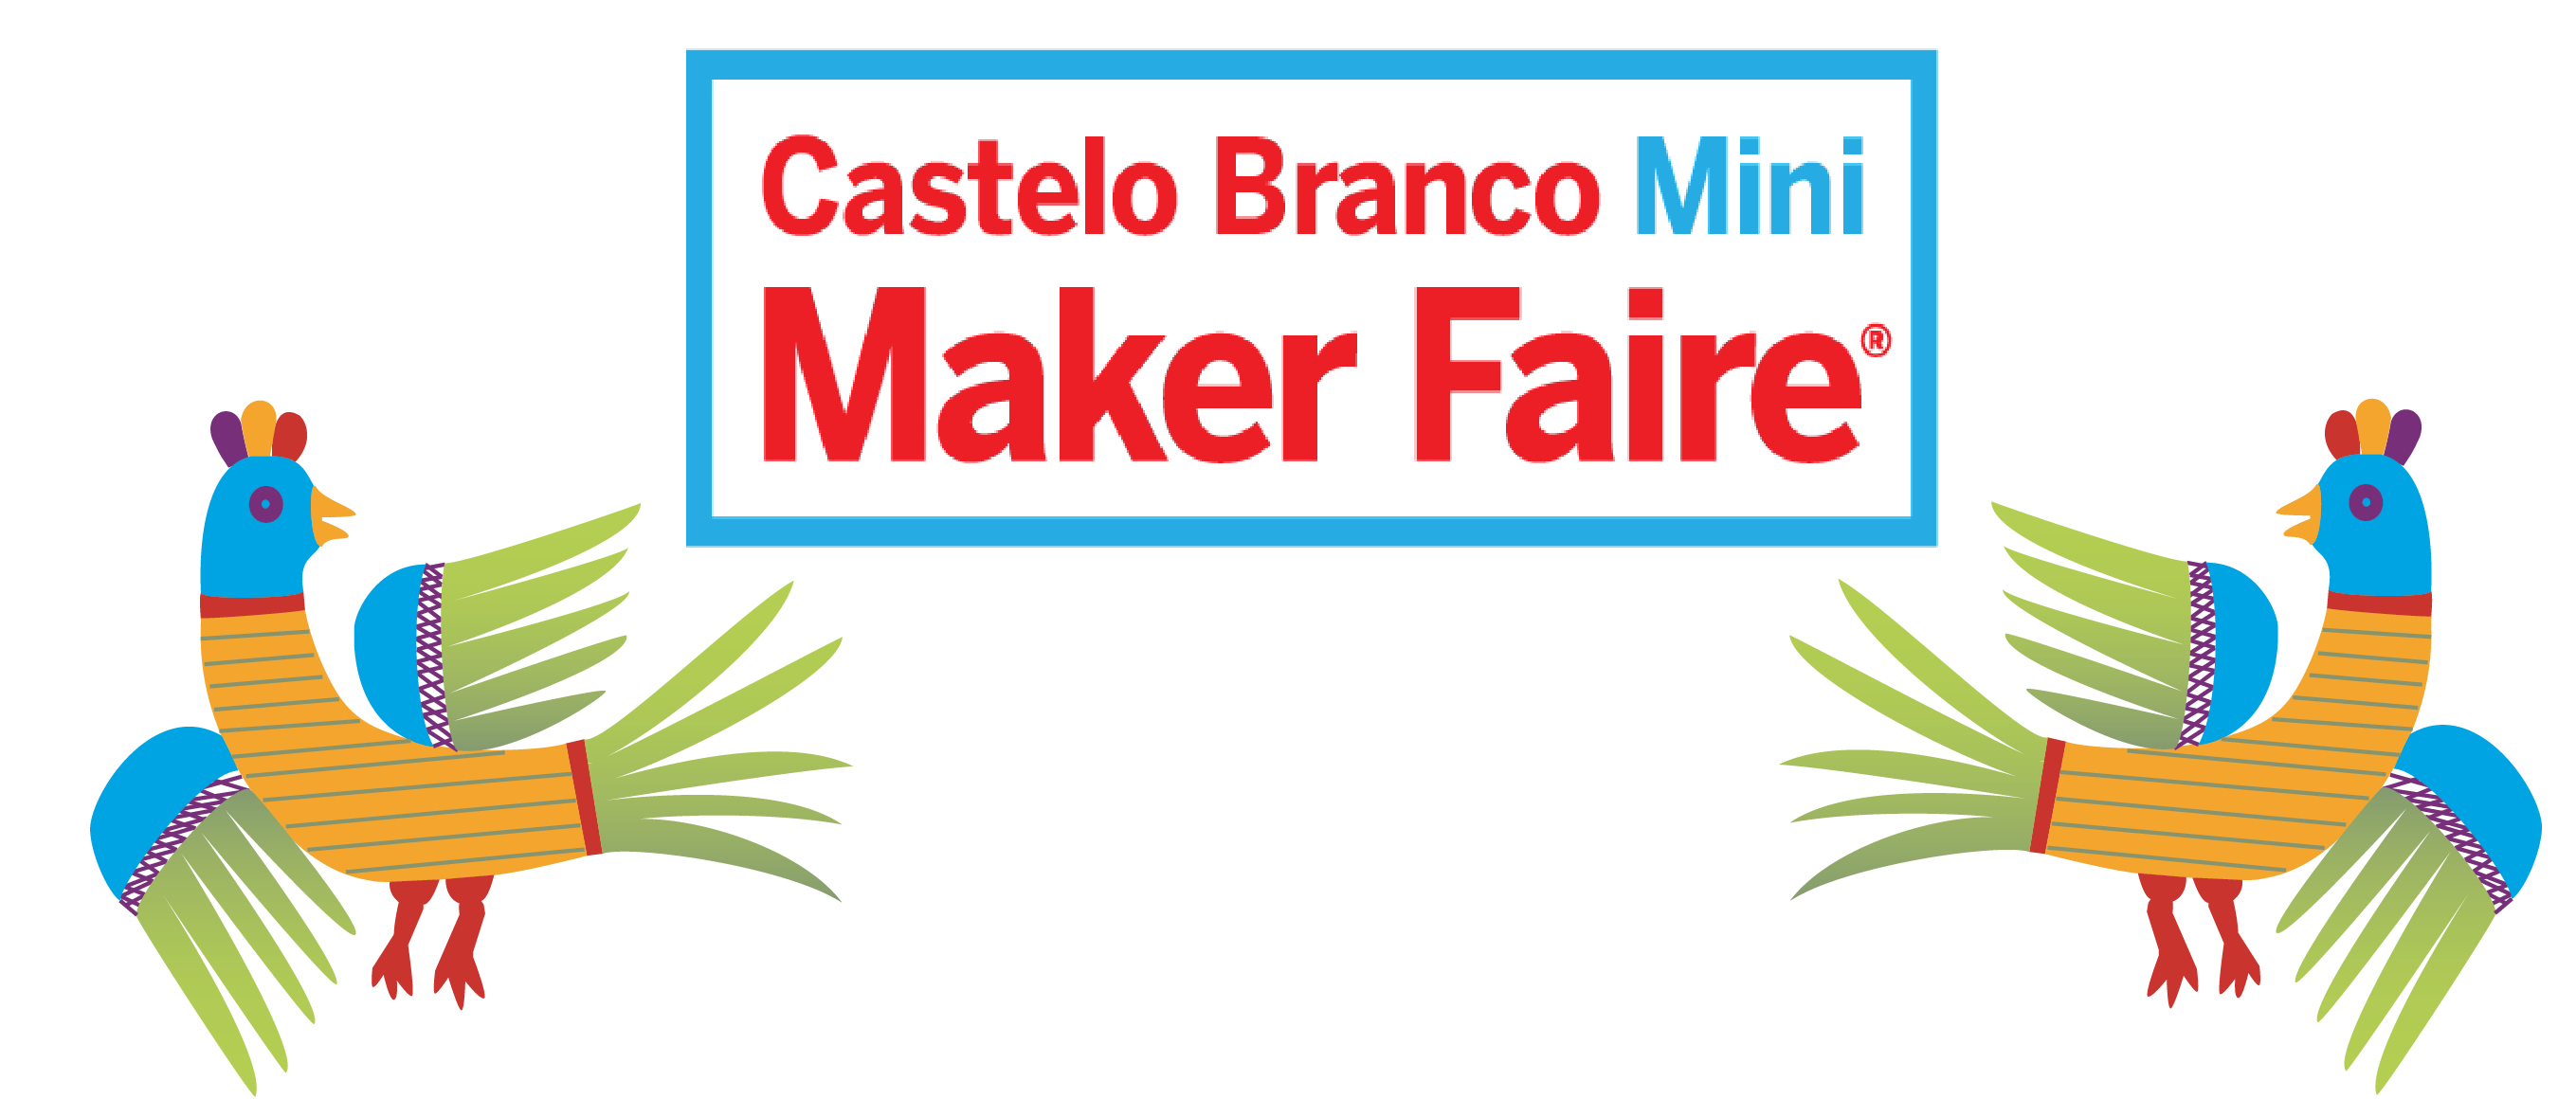 Mini Maker Faire Castelo Branco